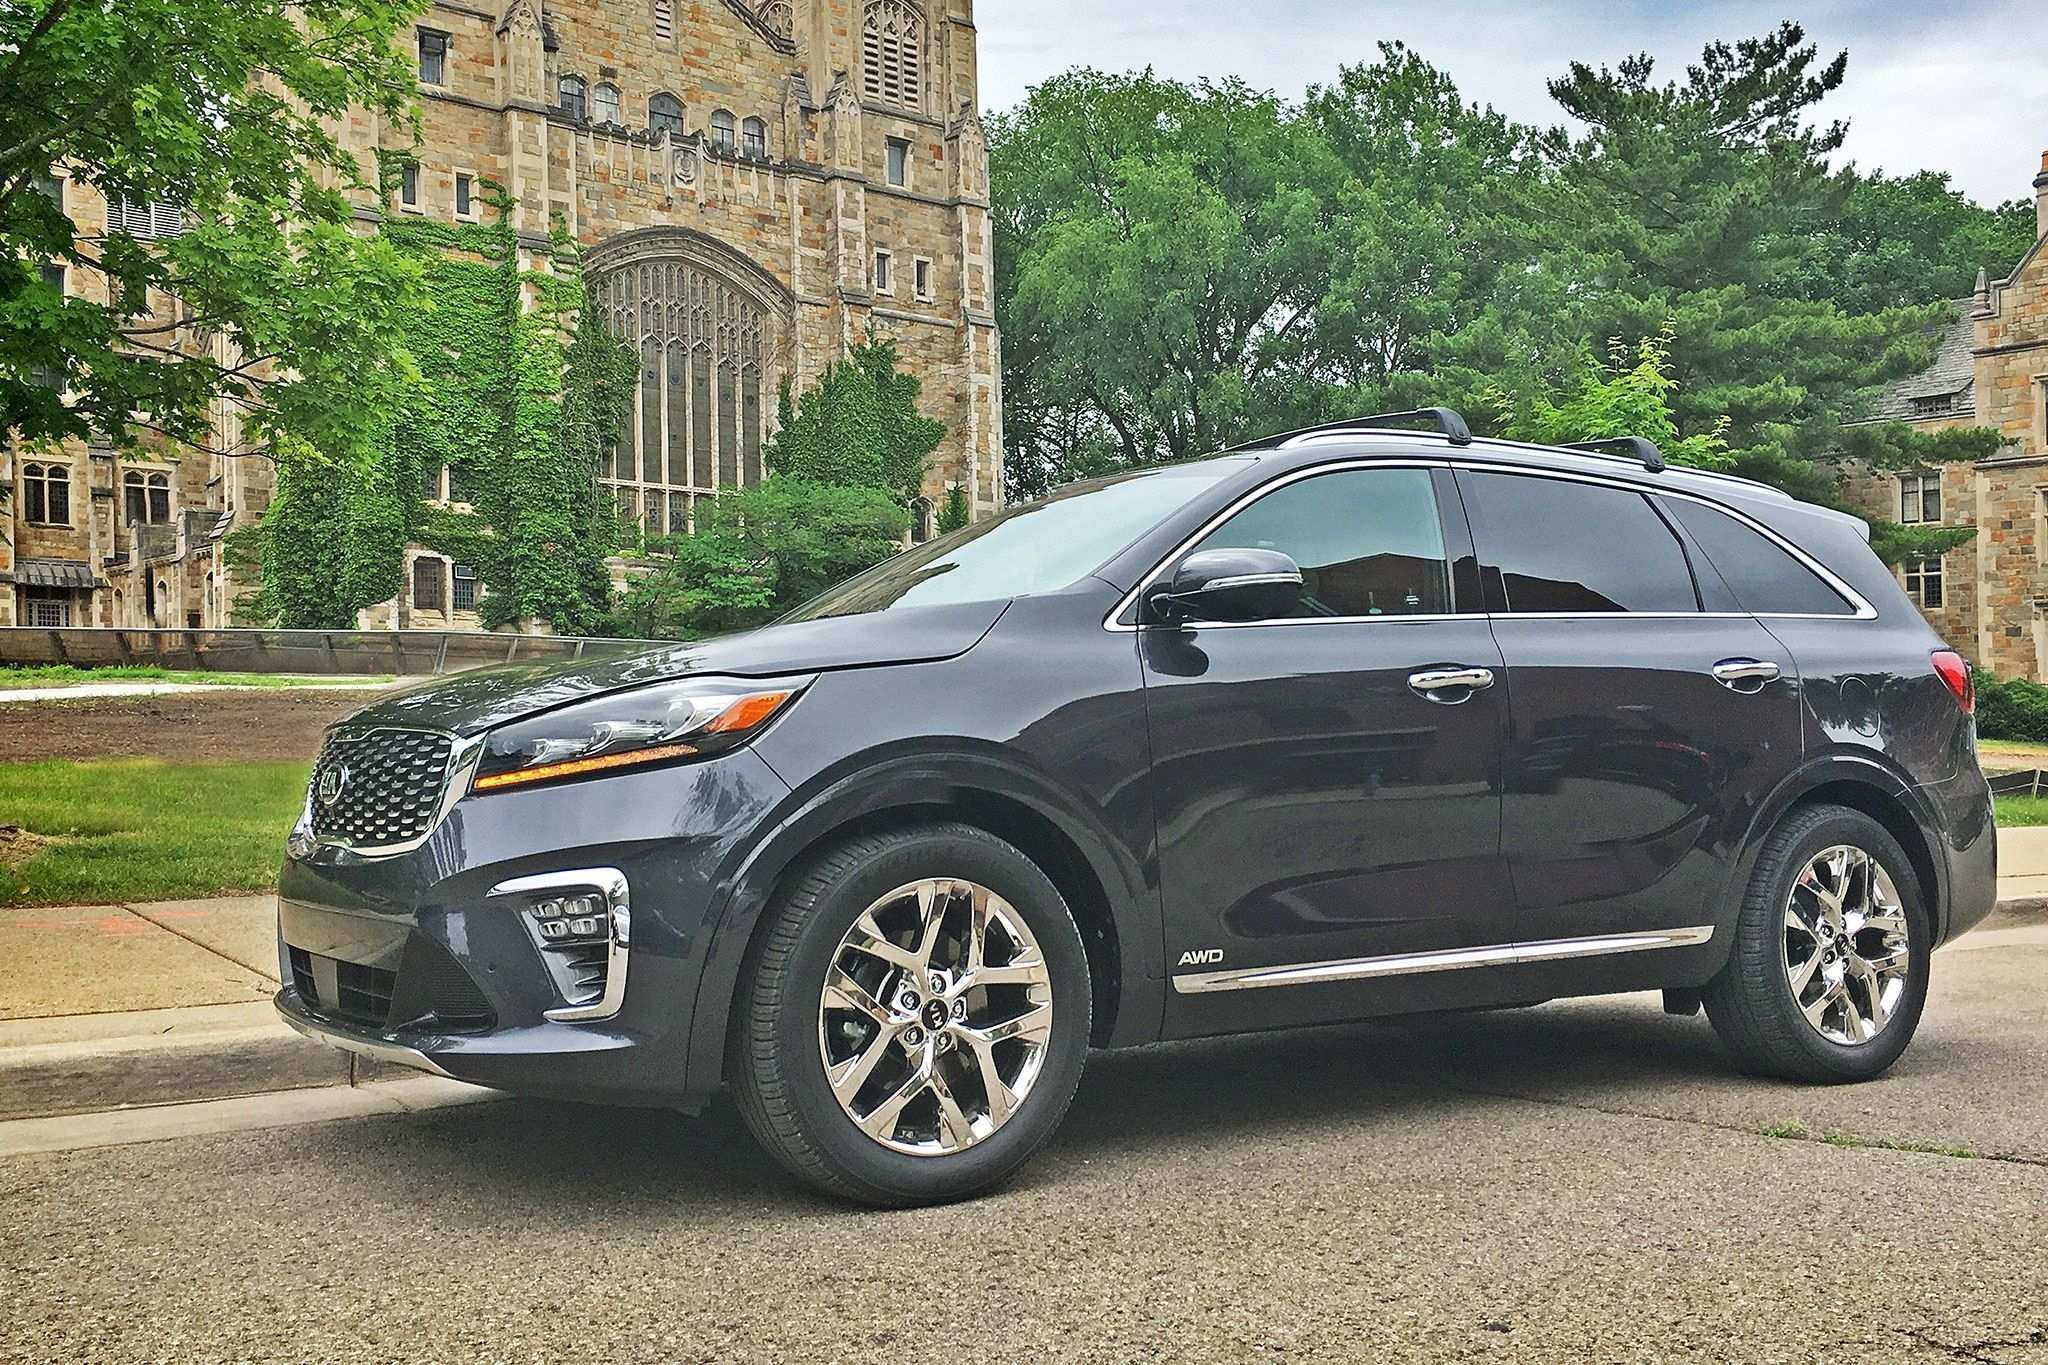 35 Best Review 2019 Kia Sorento Owners Manual Performance with 2019 Kia Sorento Owners Manual